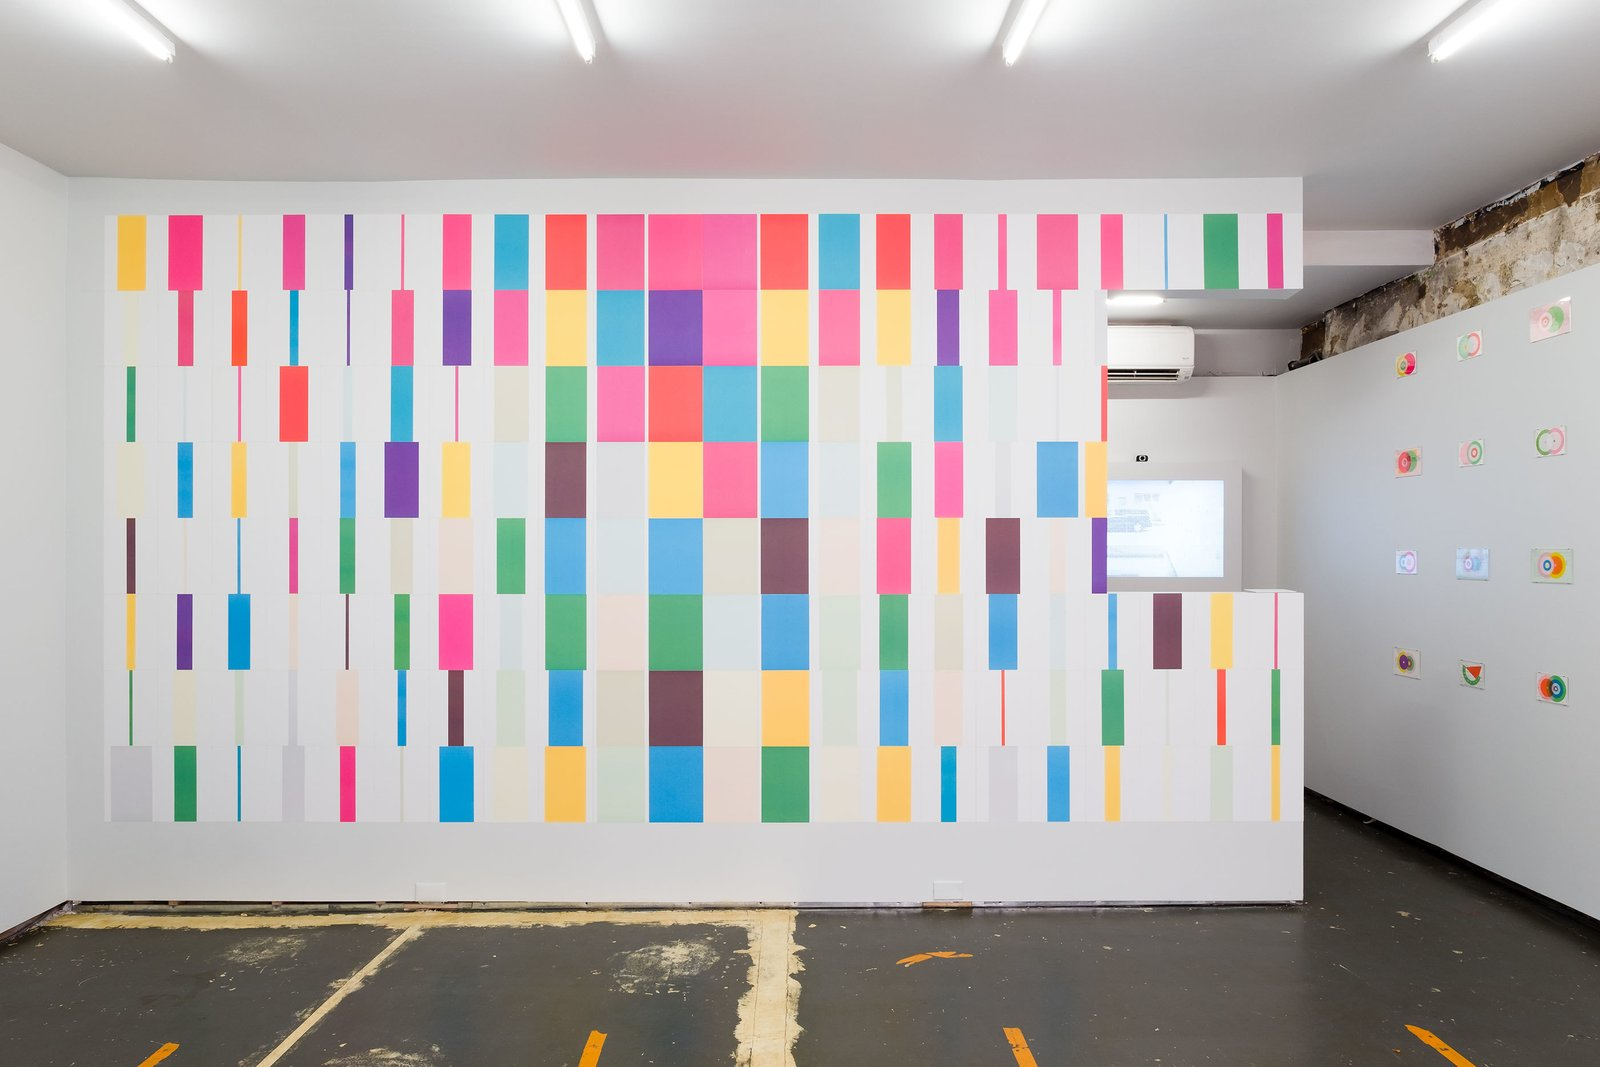 Karel Martens, A4 Wallpaper, 2013/2016. System of offset printed sheets using six colors overprinted to produce 20 colors in nine forms each. 180 sheets of paper, offset printed (each 11.75x8.25 inches).  Photo 5 of 5 in Dutch Graphic Design Master Karel Martens Opens His First Solo U.S. Exhibition